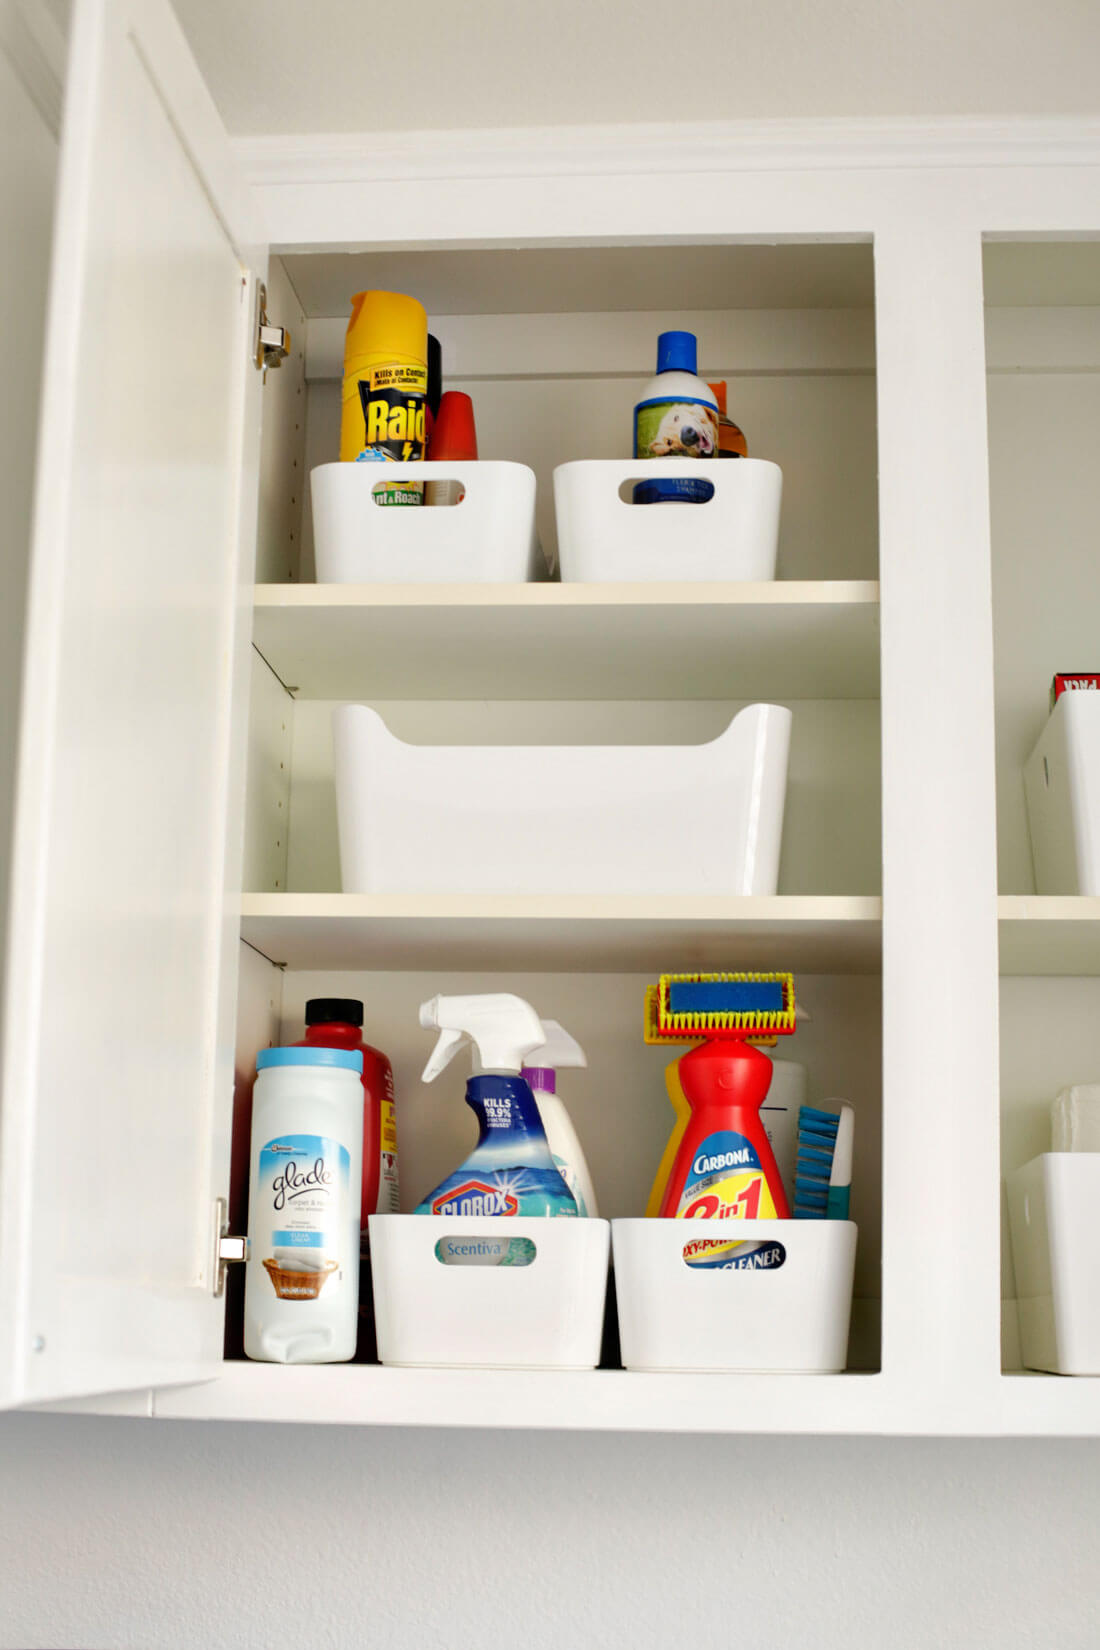 How To Organize Your Laundry Room Cabinets From 30daysblog